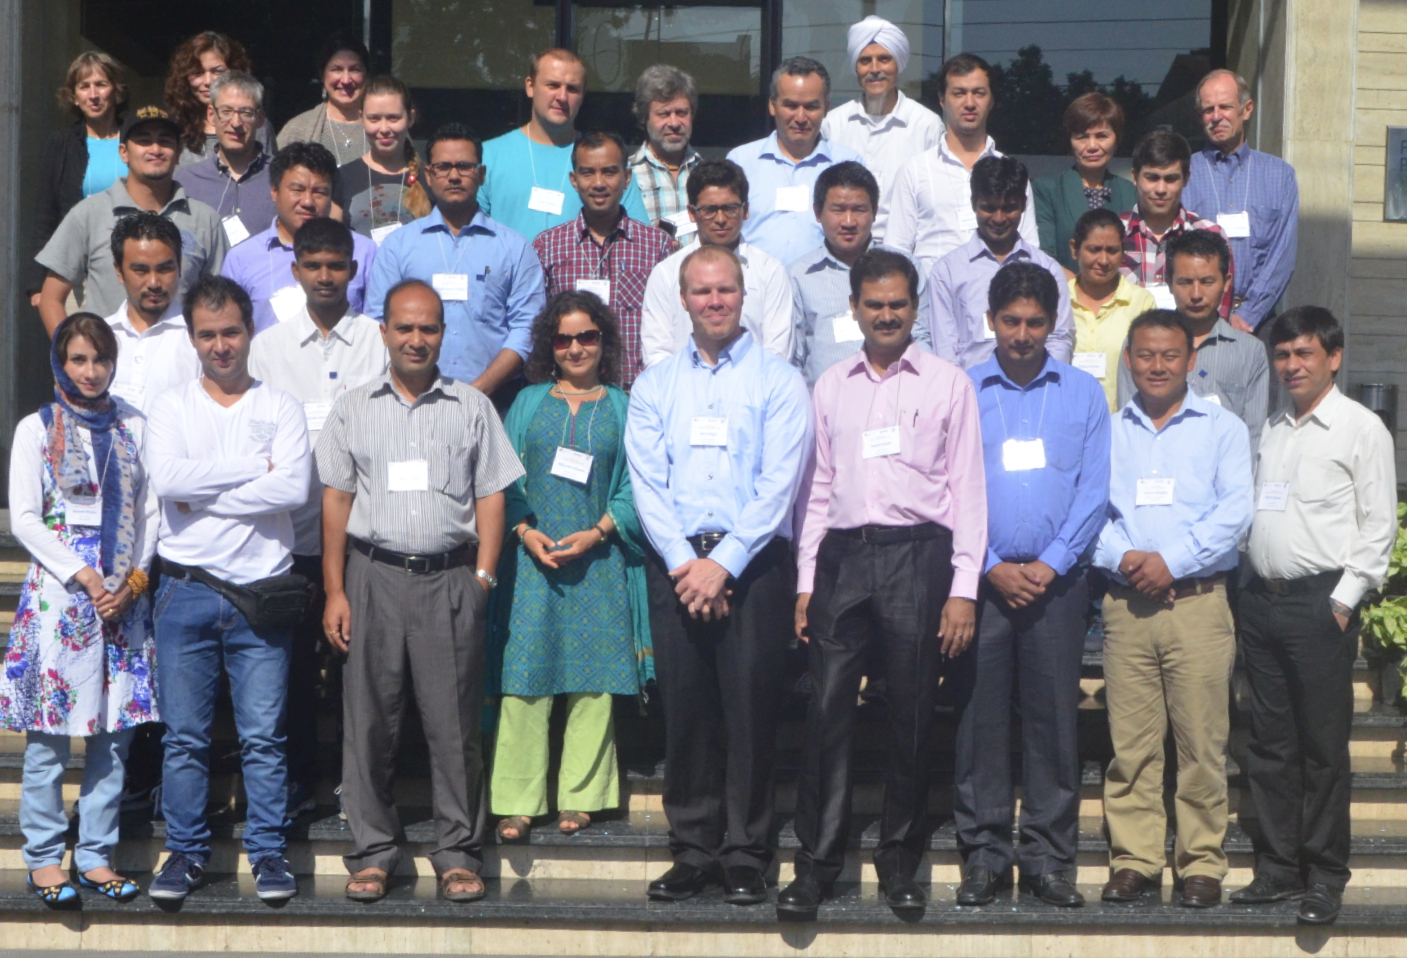 Participants of the Dehradun, India, Short Course Training, October 13-­16, 2014 Credit: Bikas Chandra Bhattarai